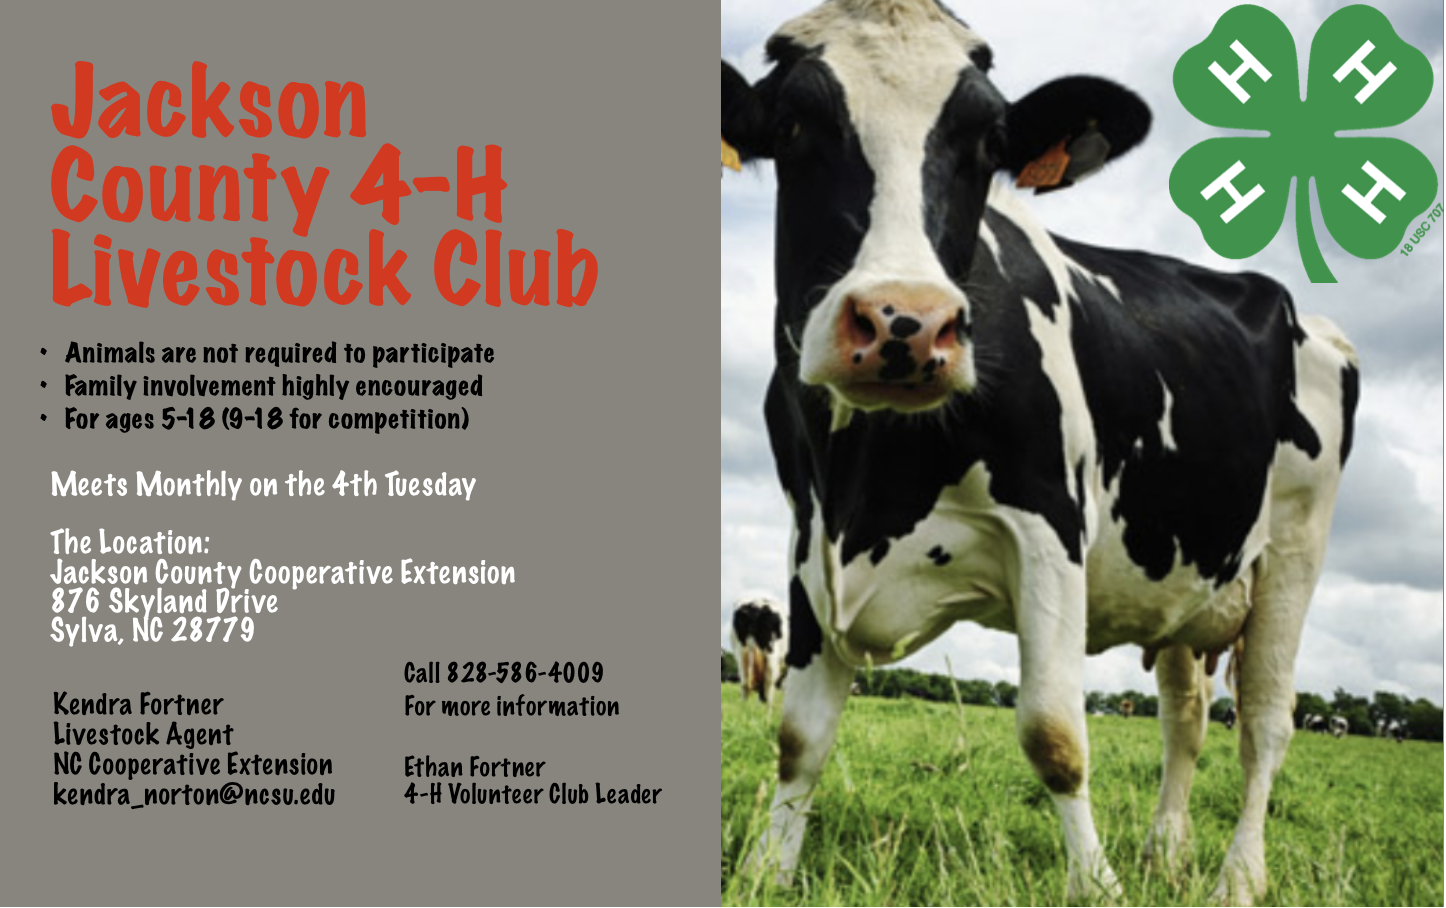 4-H Livestock Club flyer image